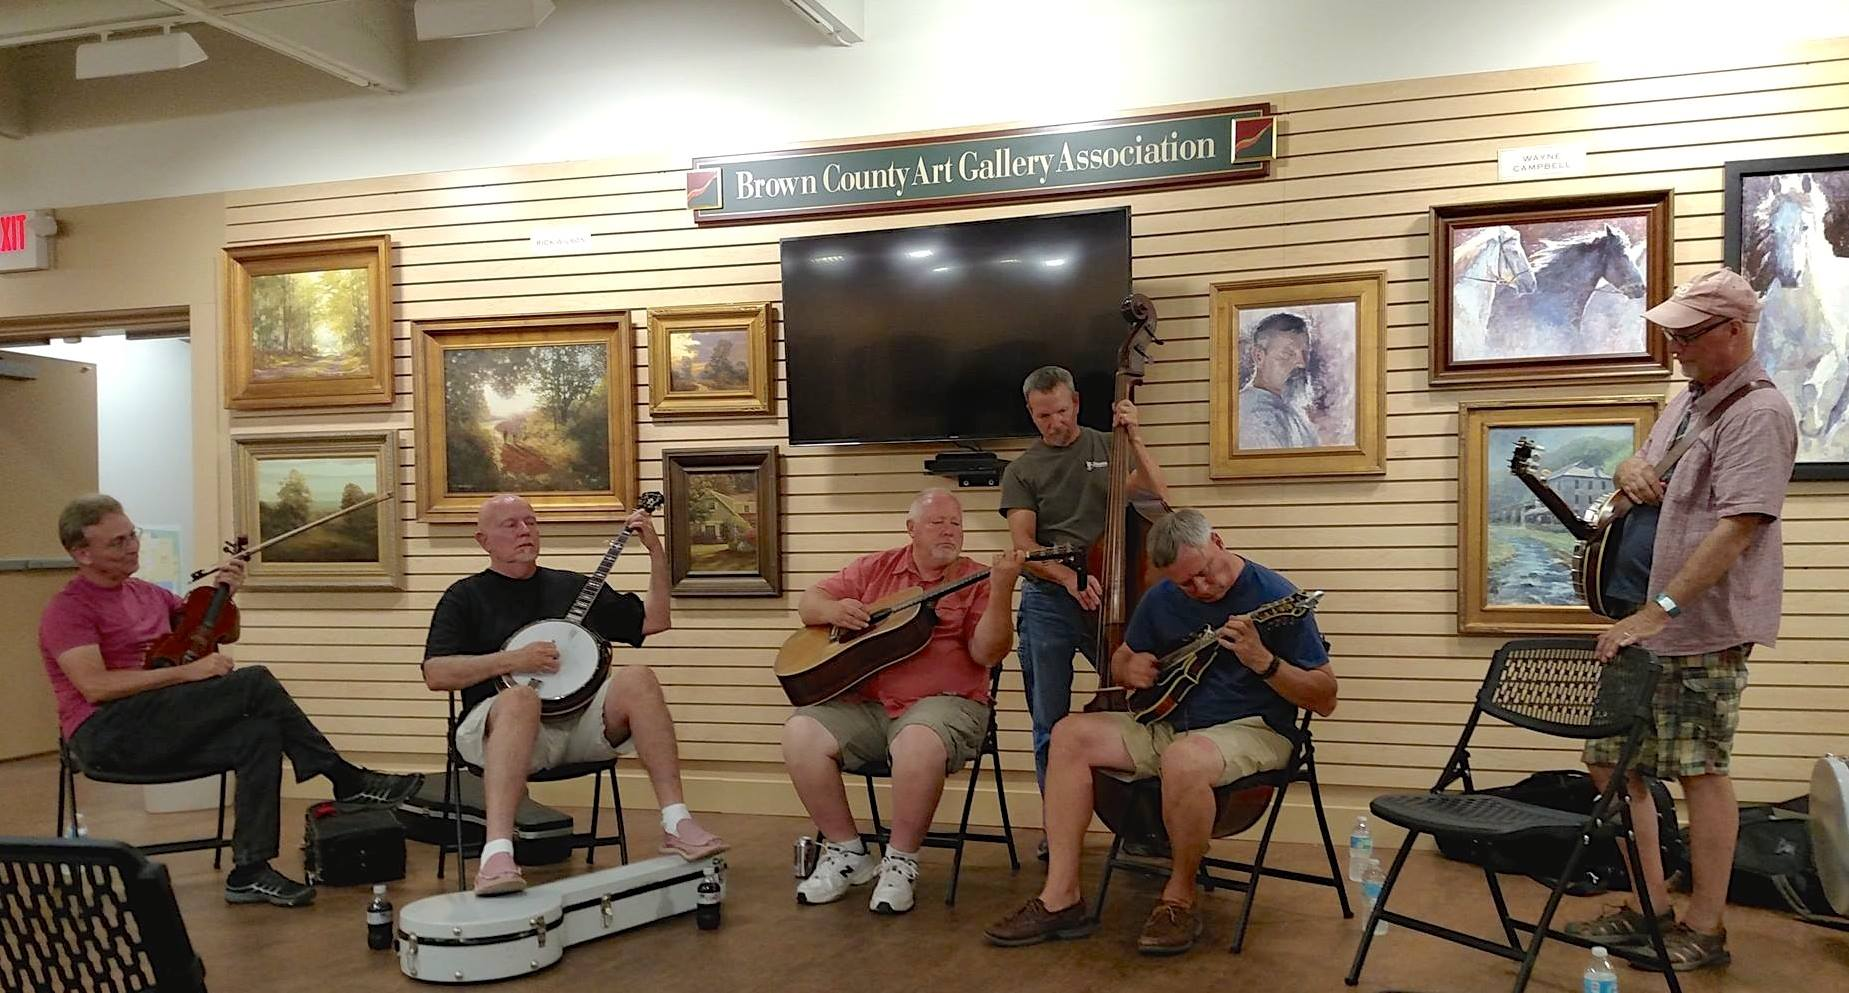 Playing at Brown County Art Gallery